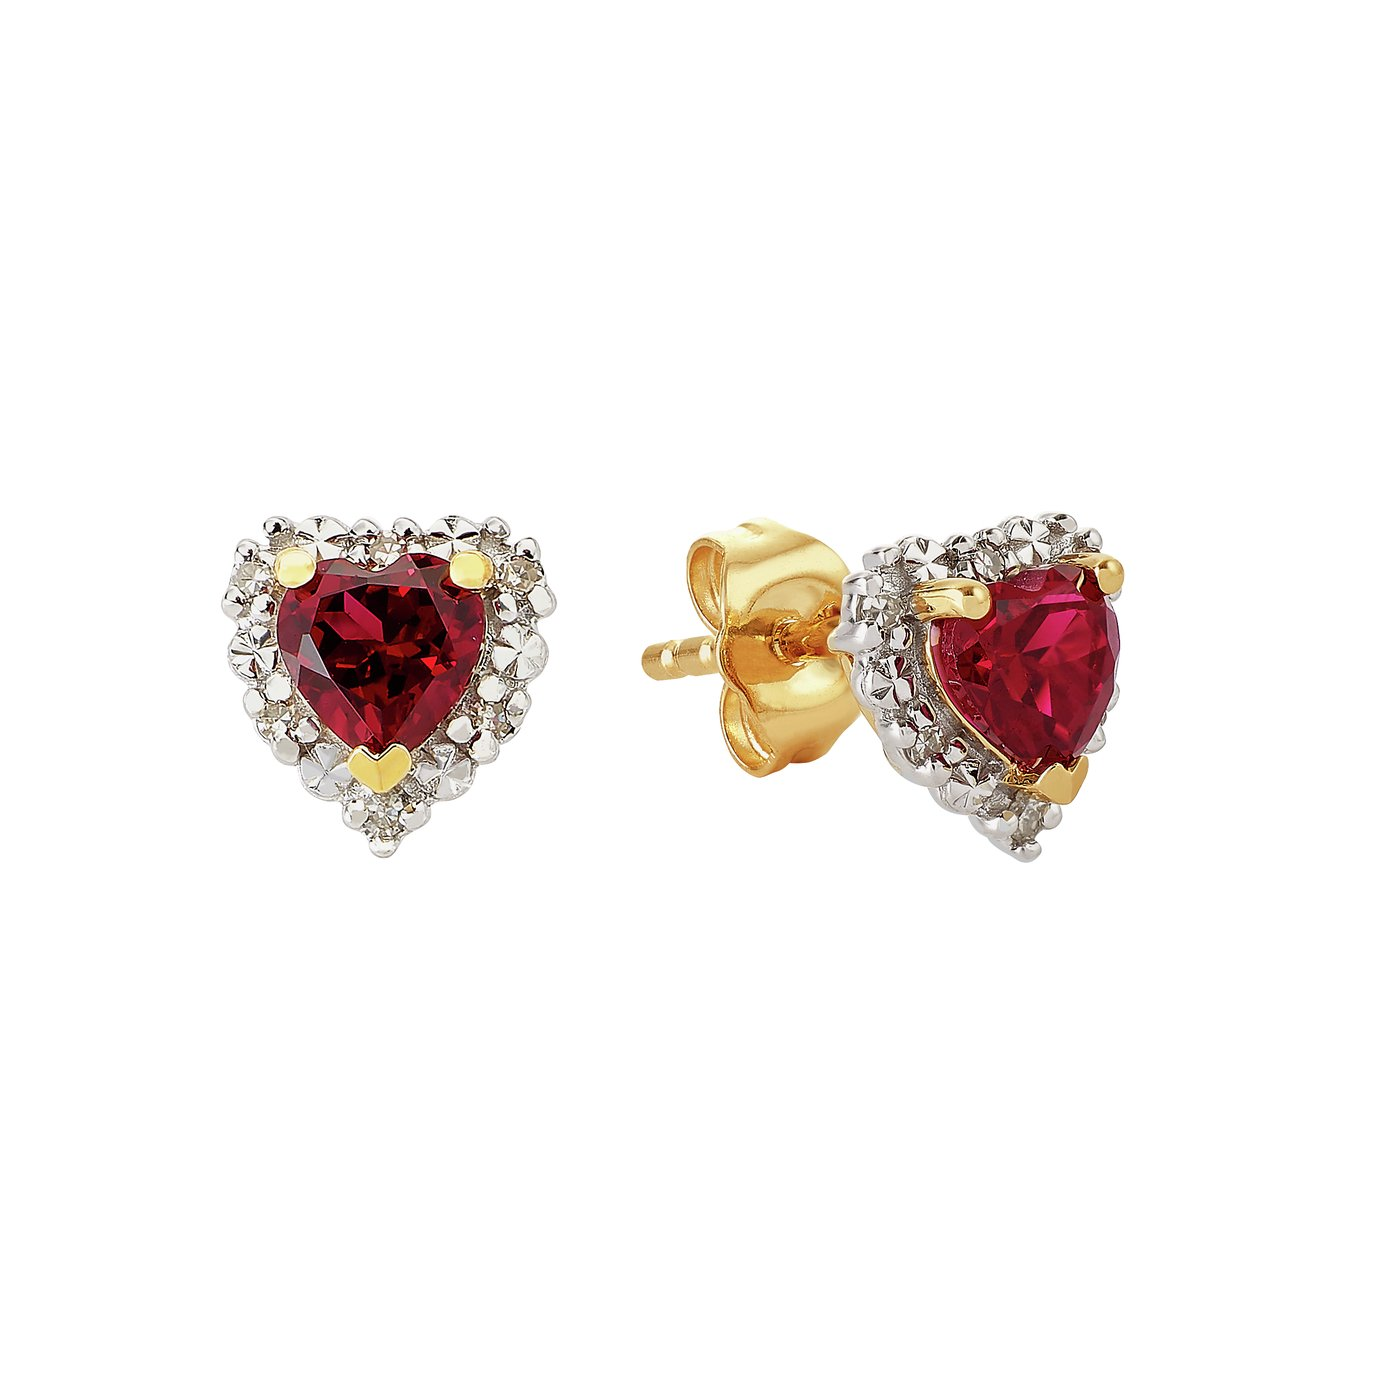 6614ab2f2 15% off when you spend £30 or more on jewellery | Argos Price ...